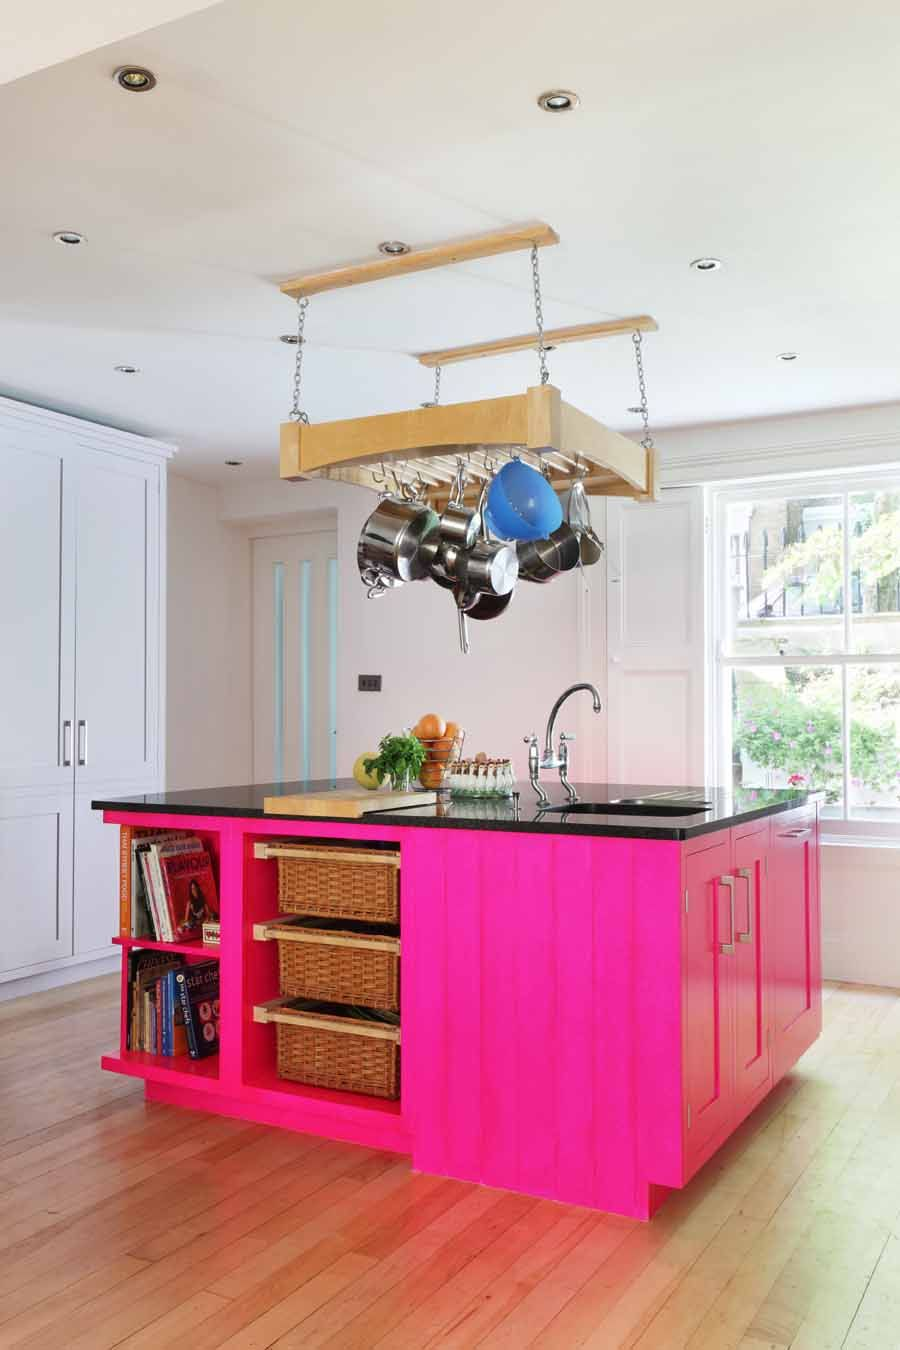 roundhouse bespoke kitchen island in neon pink pink kitchen kitchen design kitchen layout on kitchen decor pink id=83450